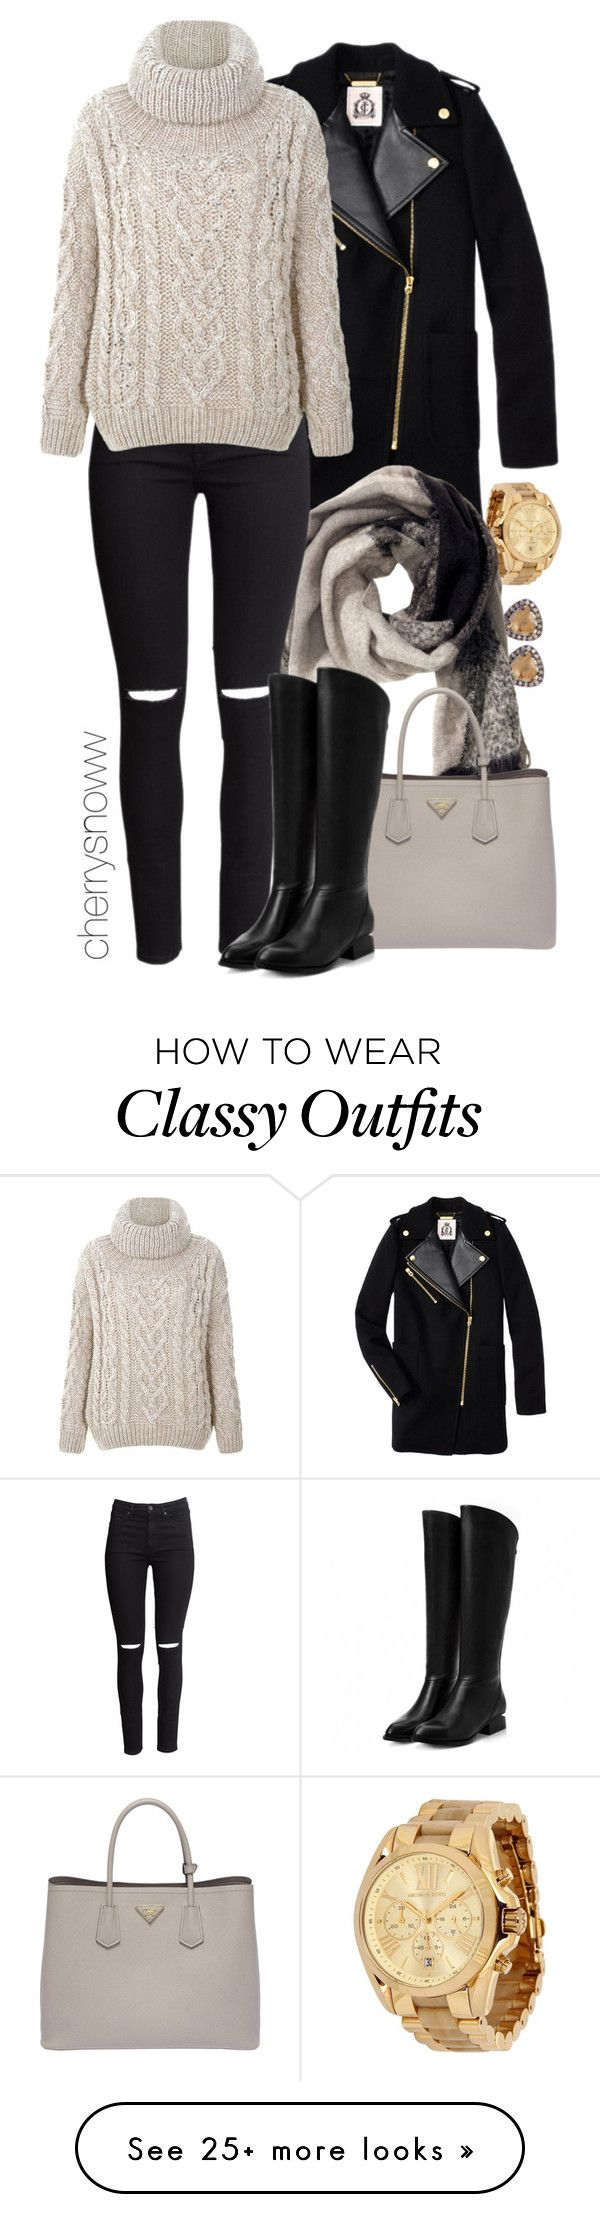 """Classy edgy casual chic fall outfit"" by cherrysnoww on Polyvore featuring moda, Juicy Couture, Suzanne Kalan, Michael Kors, H&M e Prada"